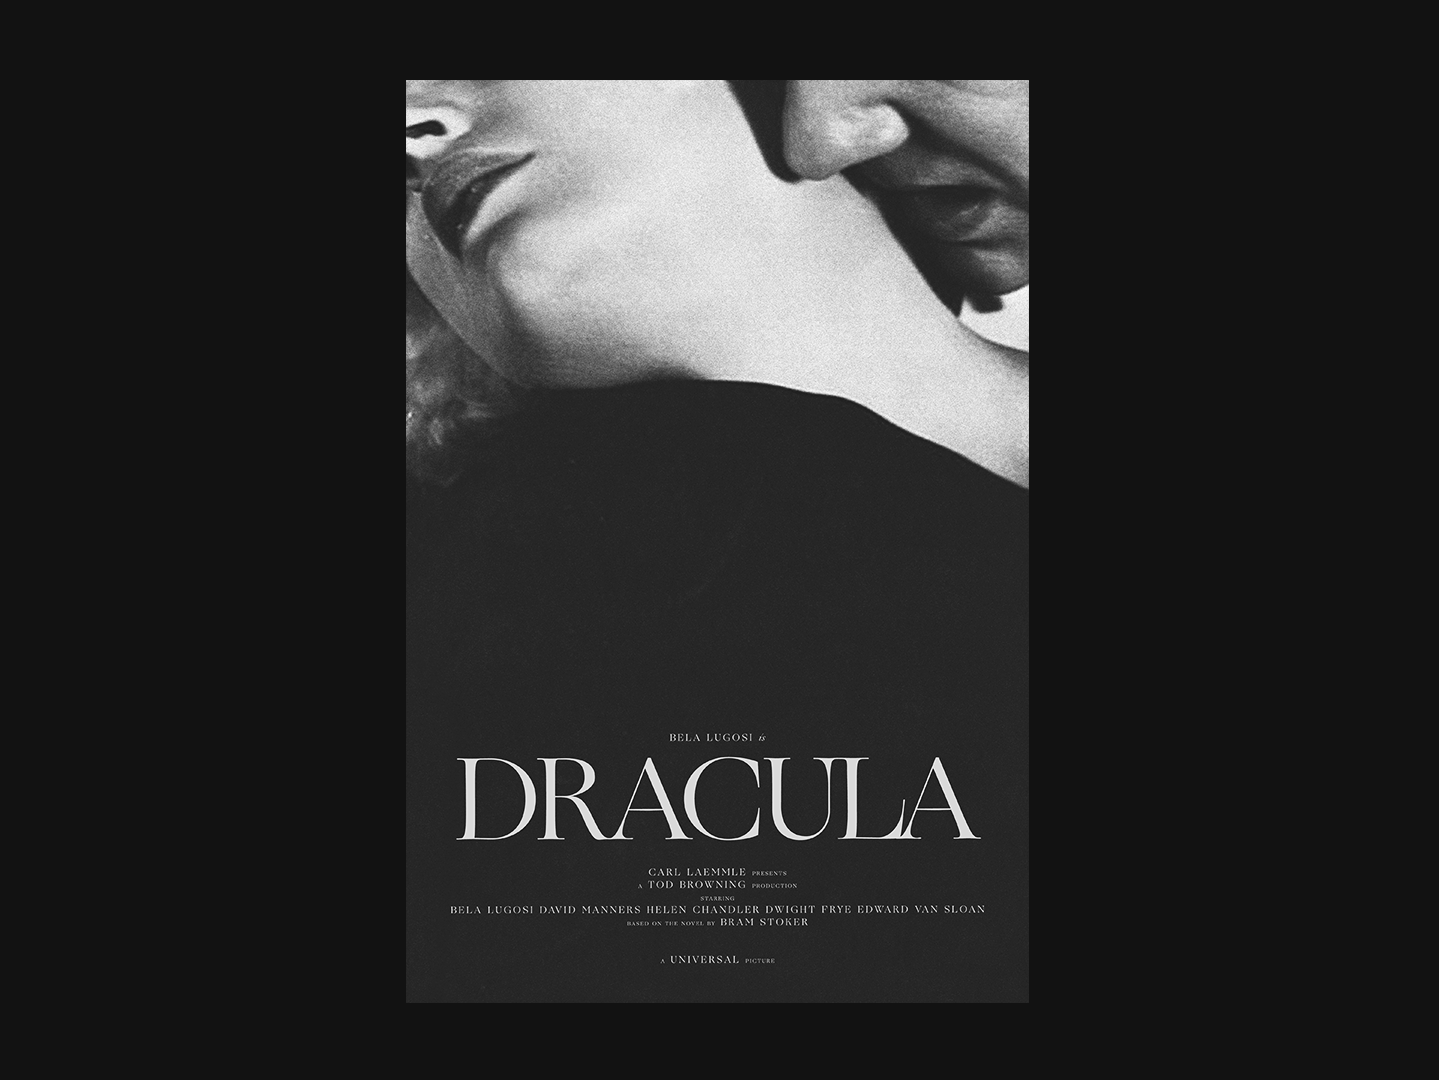 Dracula (1931) by Danny Rutledge on Dribbble